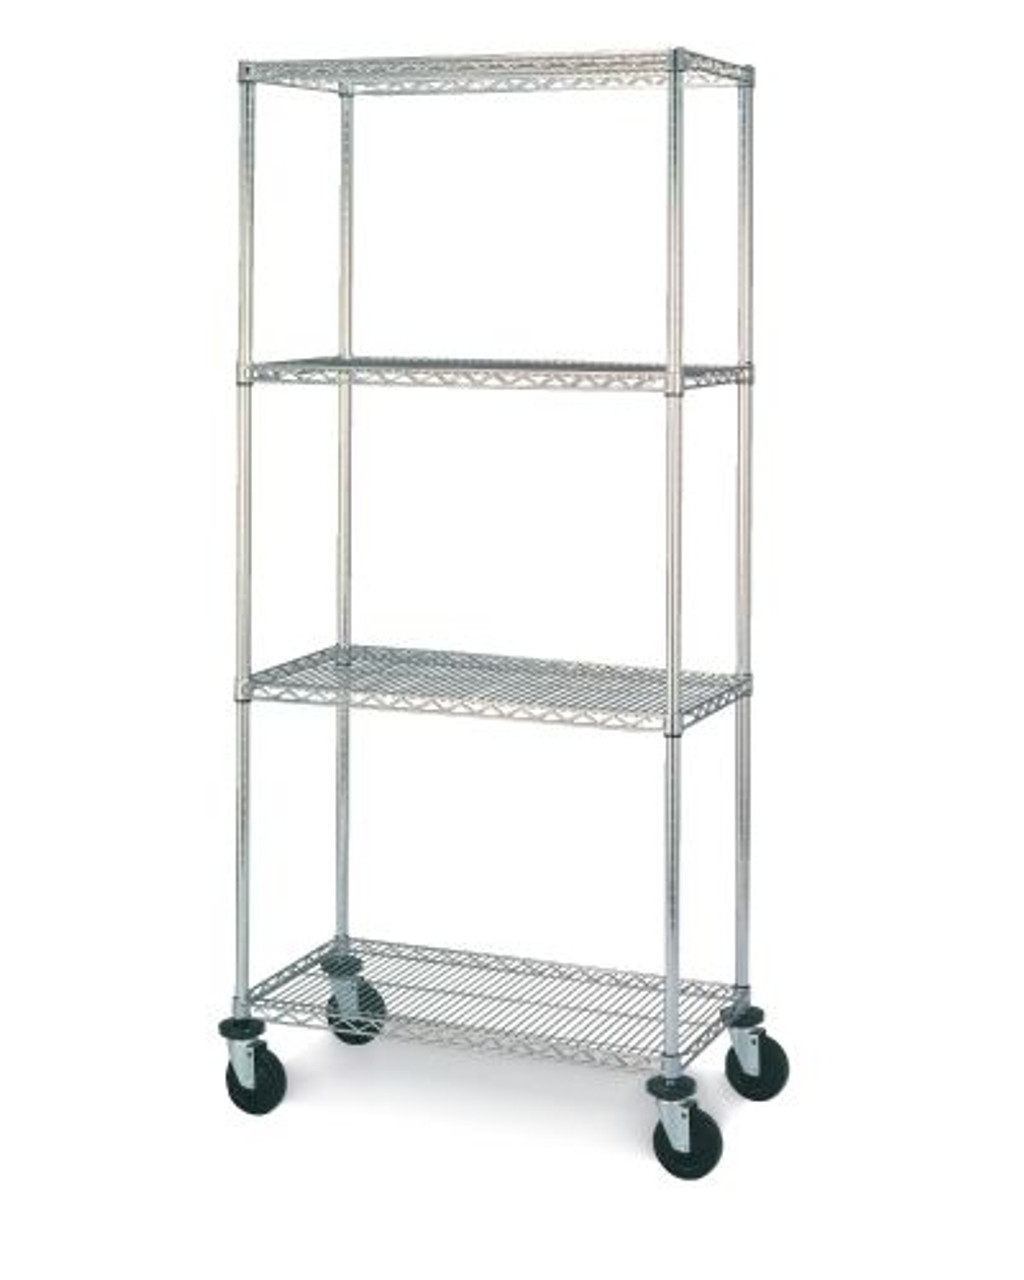 "Olympic 14"" Deep 4 Shelf Mobile Carts - Chrome - 14"" x 36"" x 68"" MJ1436-63UC"